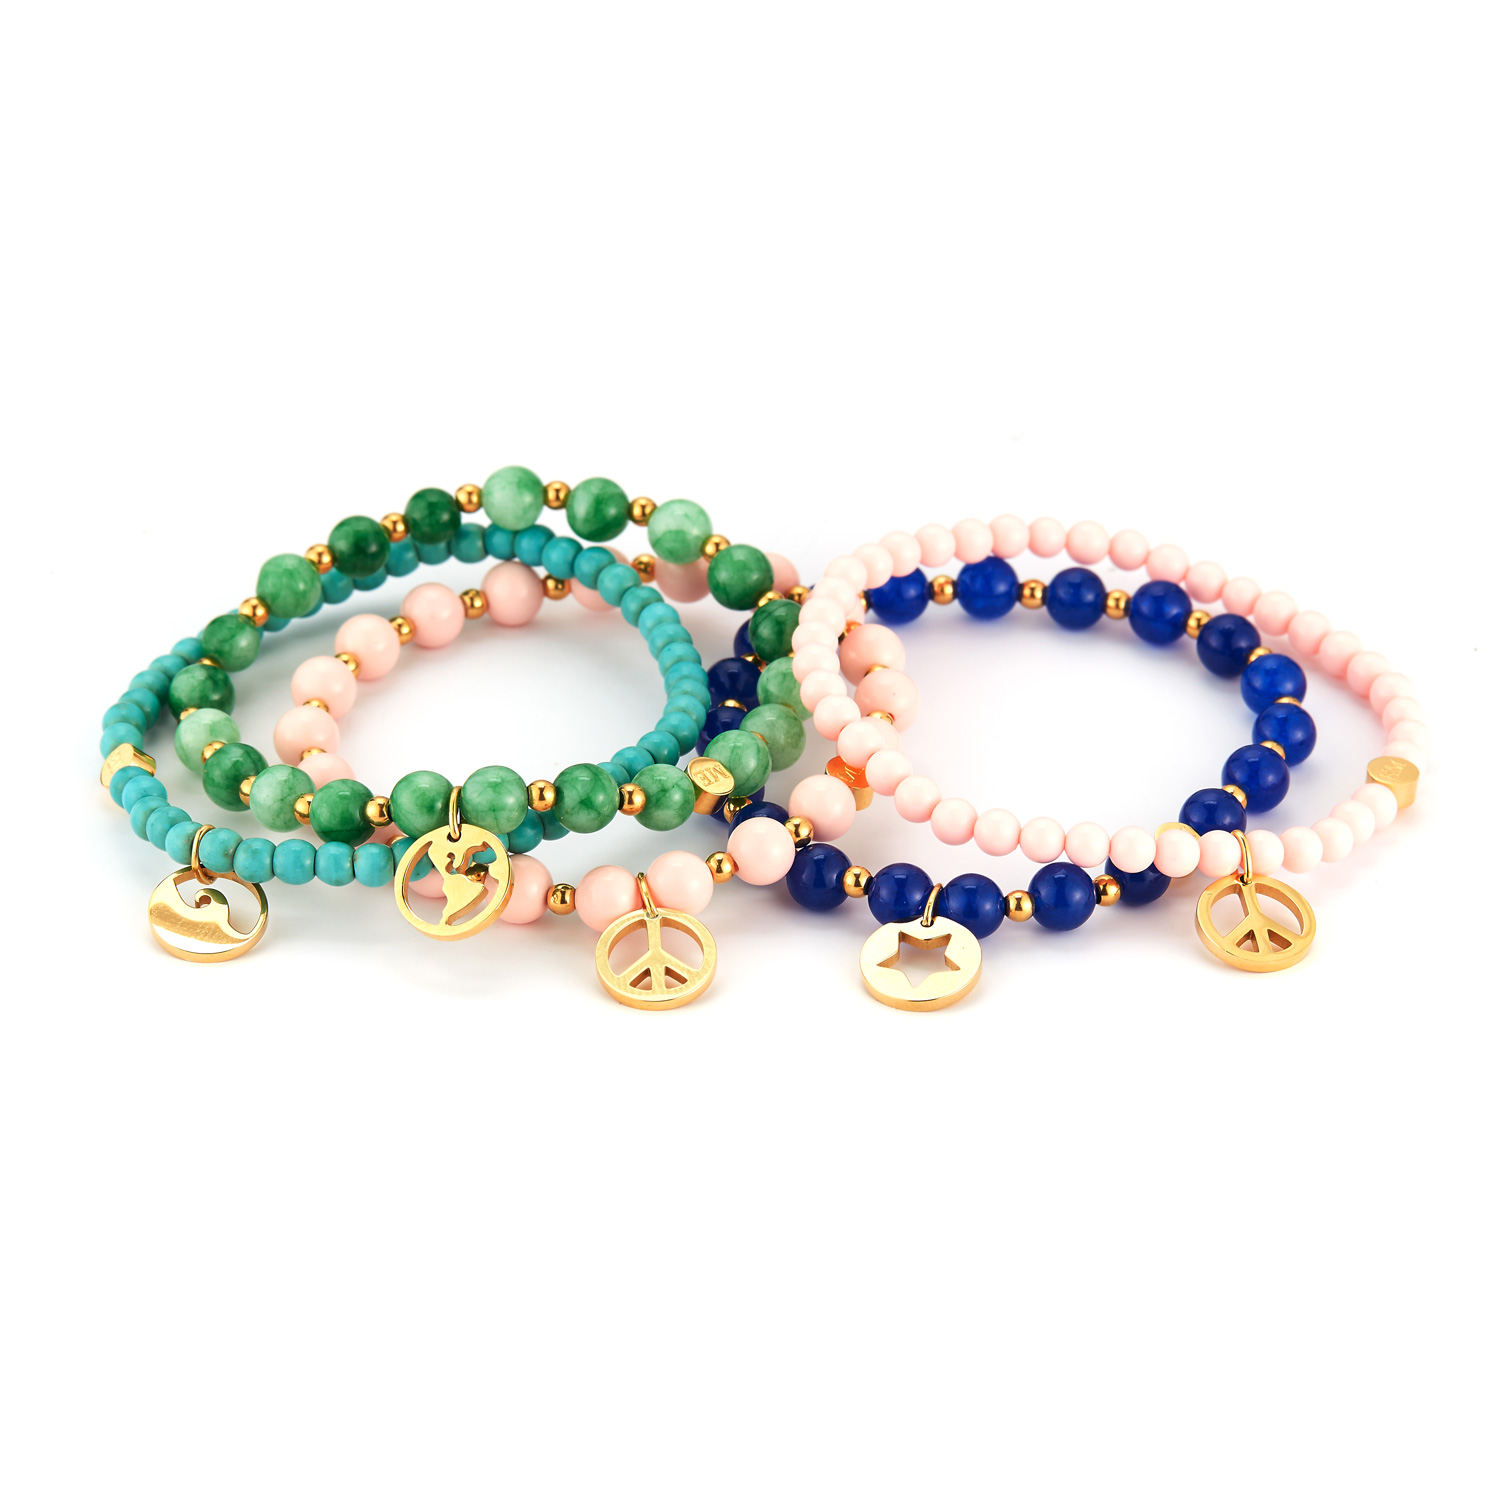 Stone bead bracelets with meaningful charms